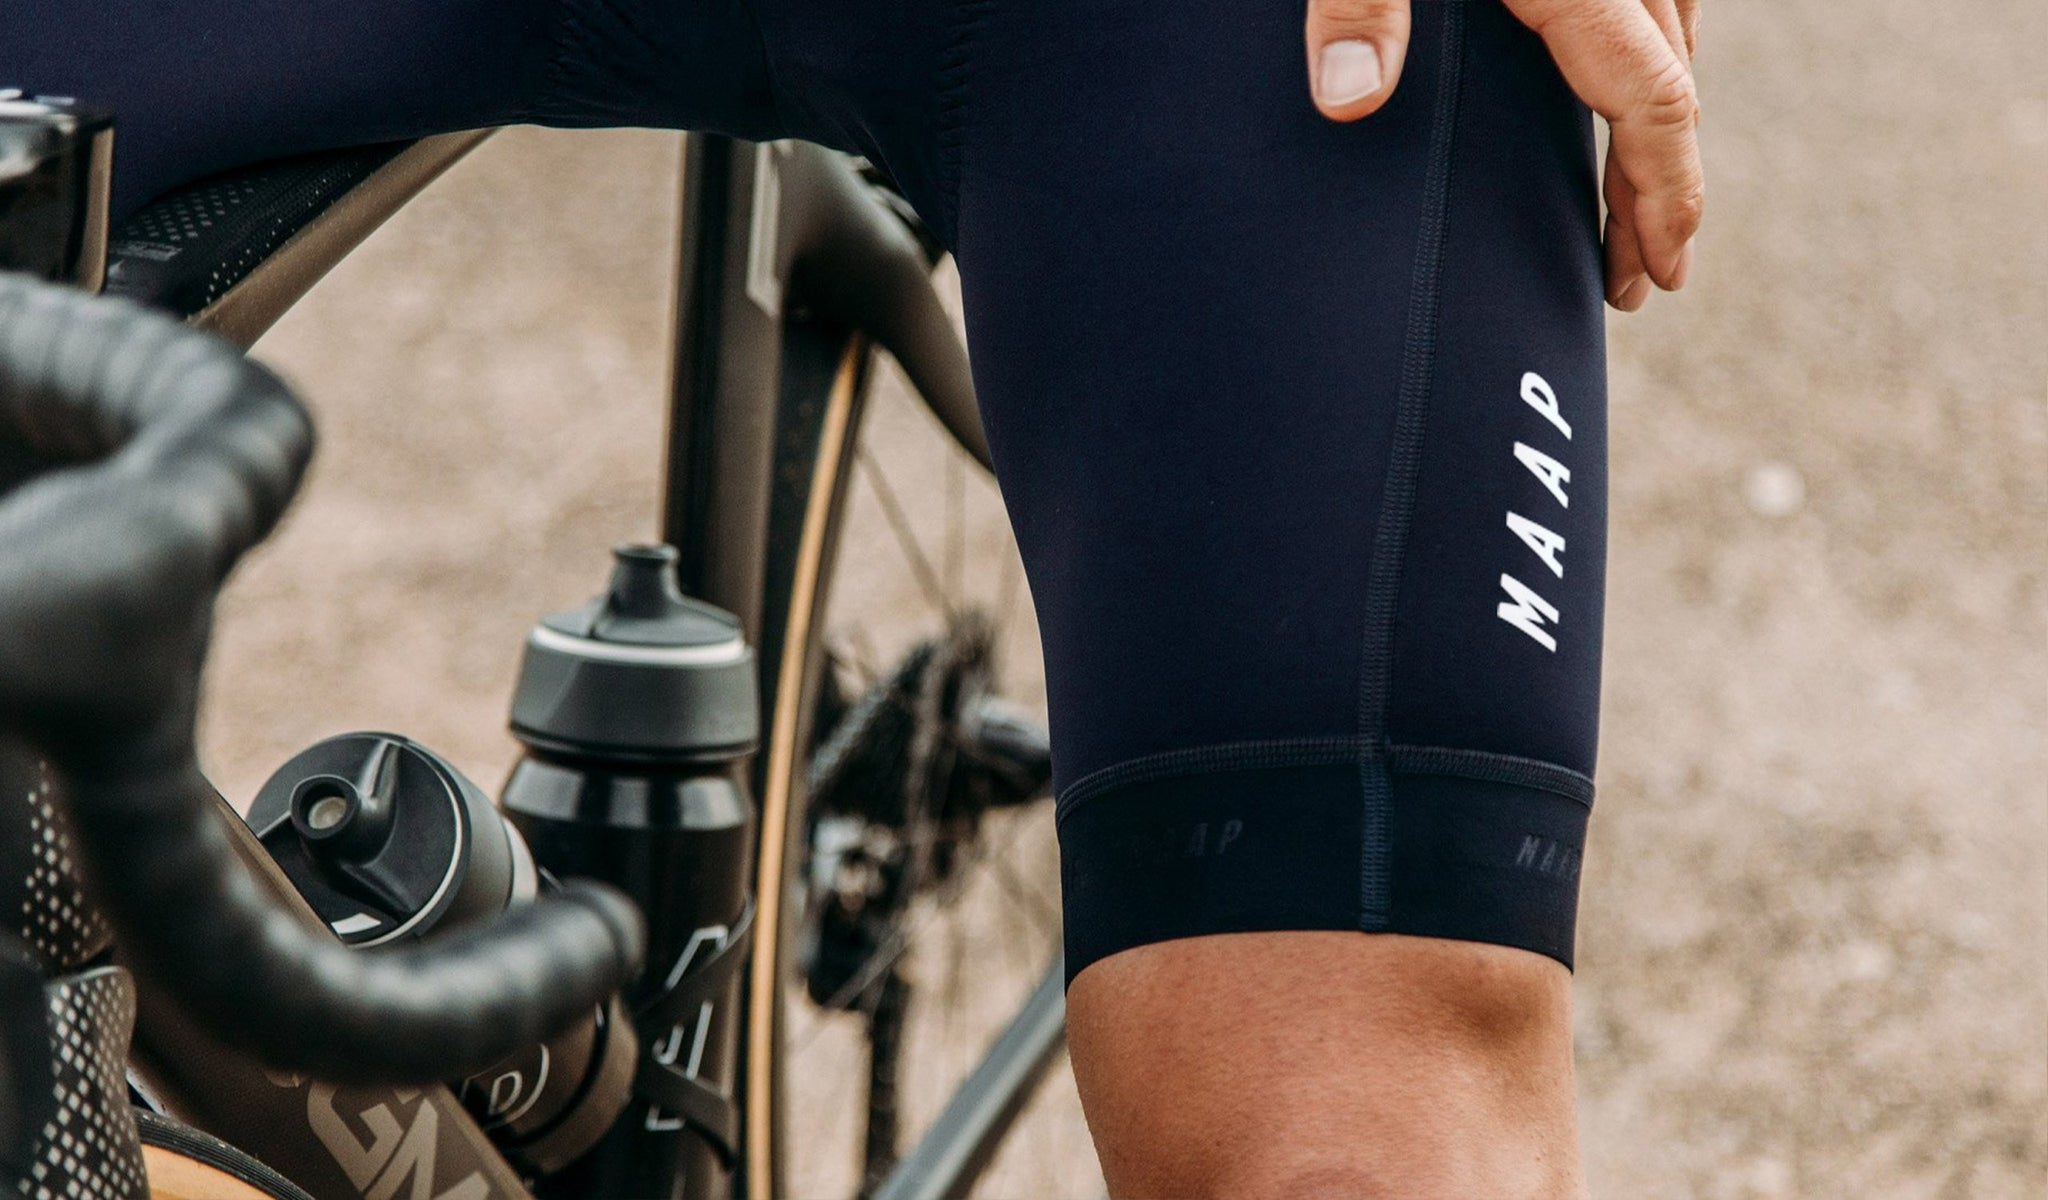 MAAP Training Cycling Bib Shorts in Navy/White for everyday riding.